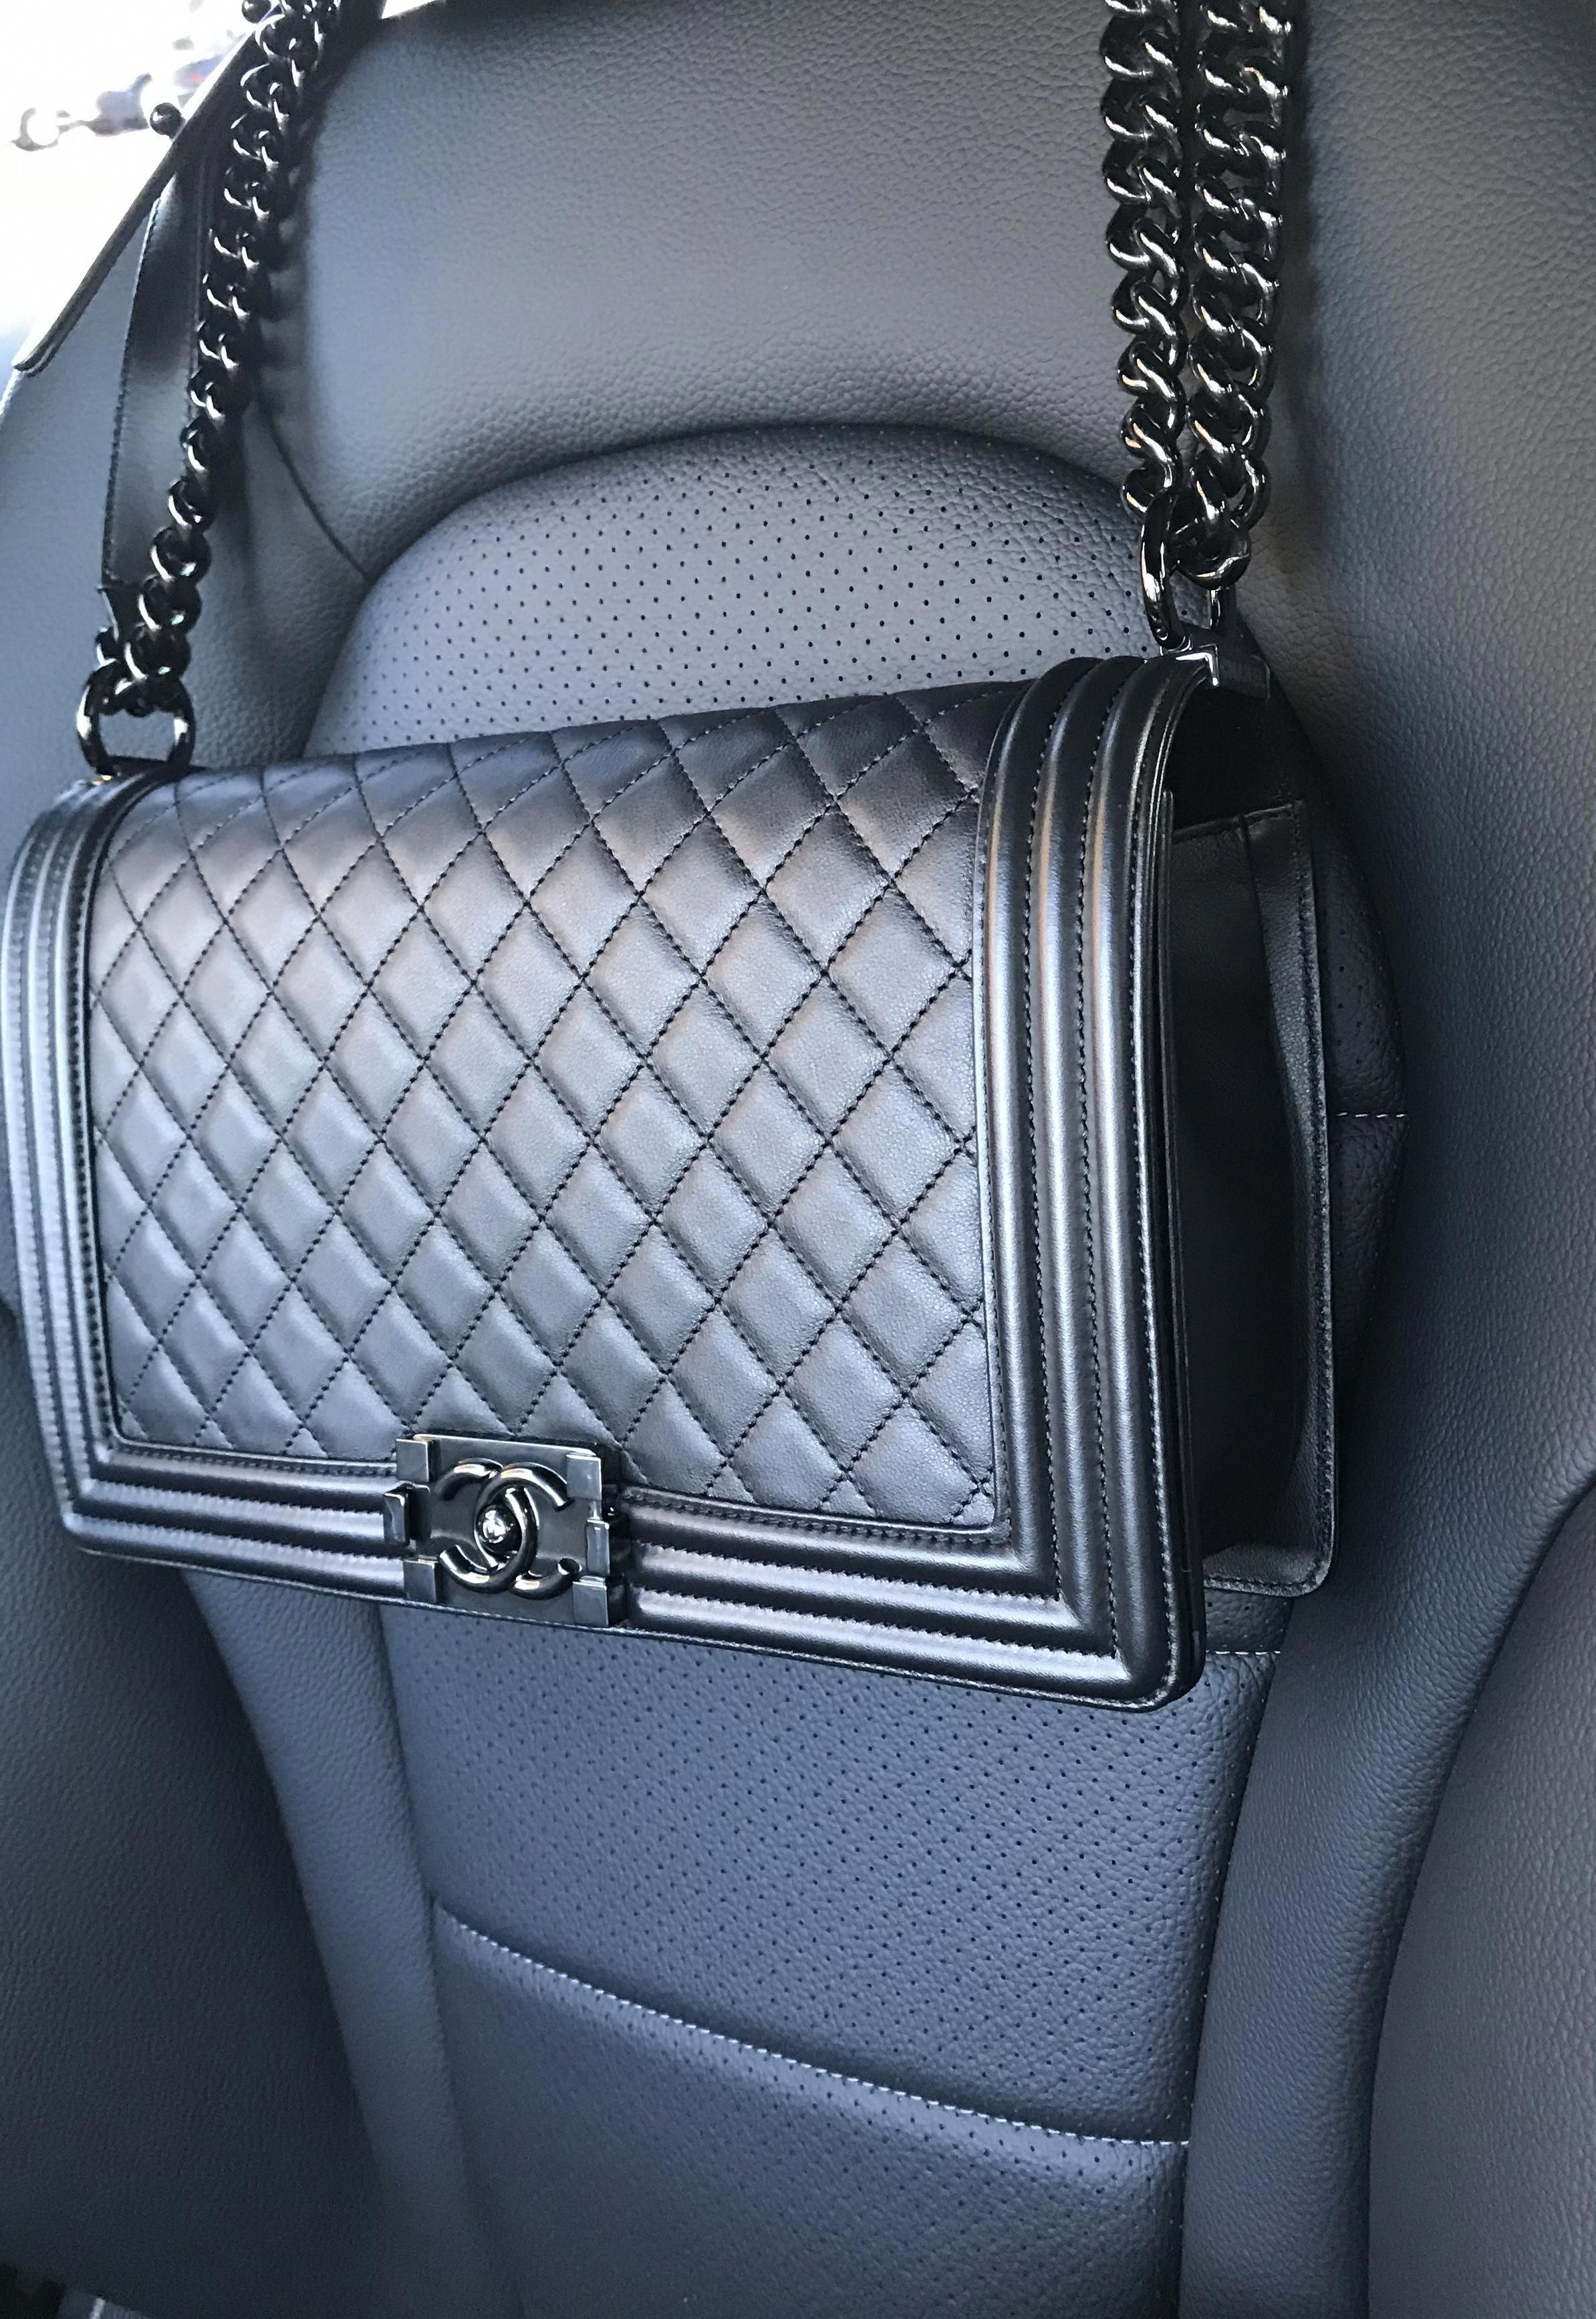 "c7ac031dd1f0 My "" So Black"" Boy! 🖤 #Chanel #Chanelhandbags 